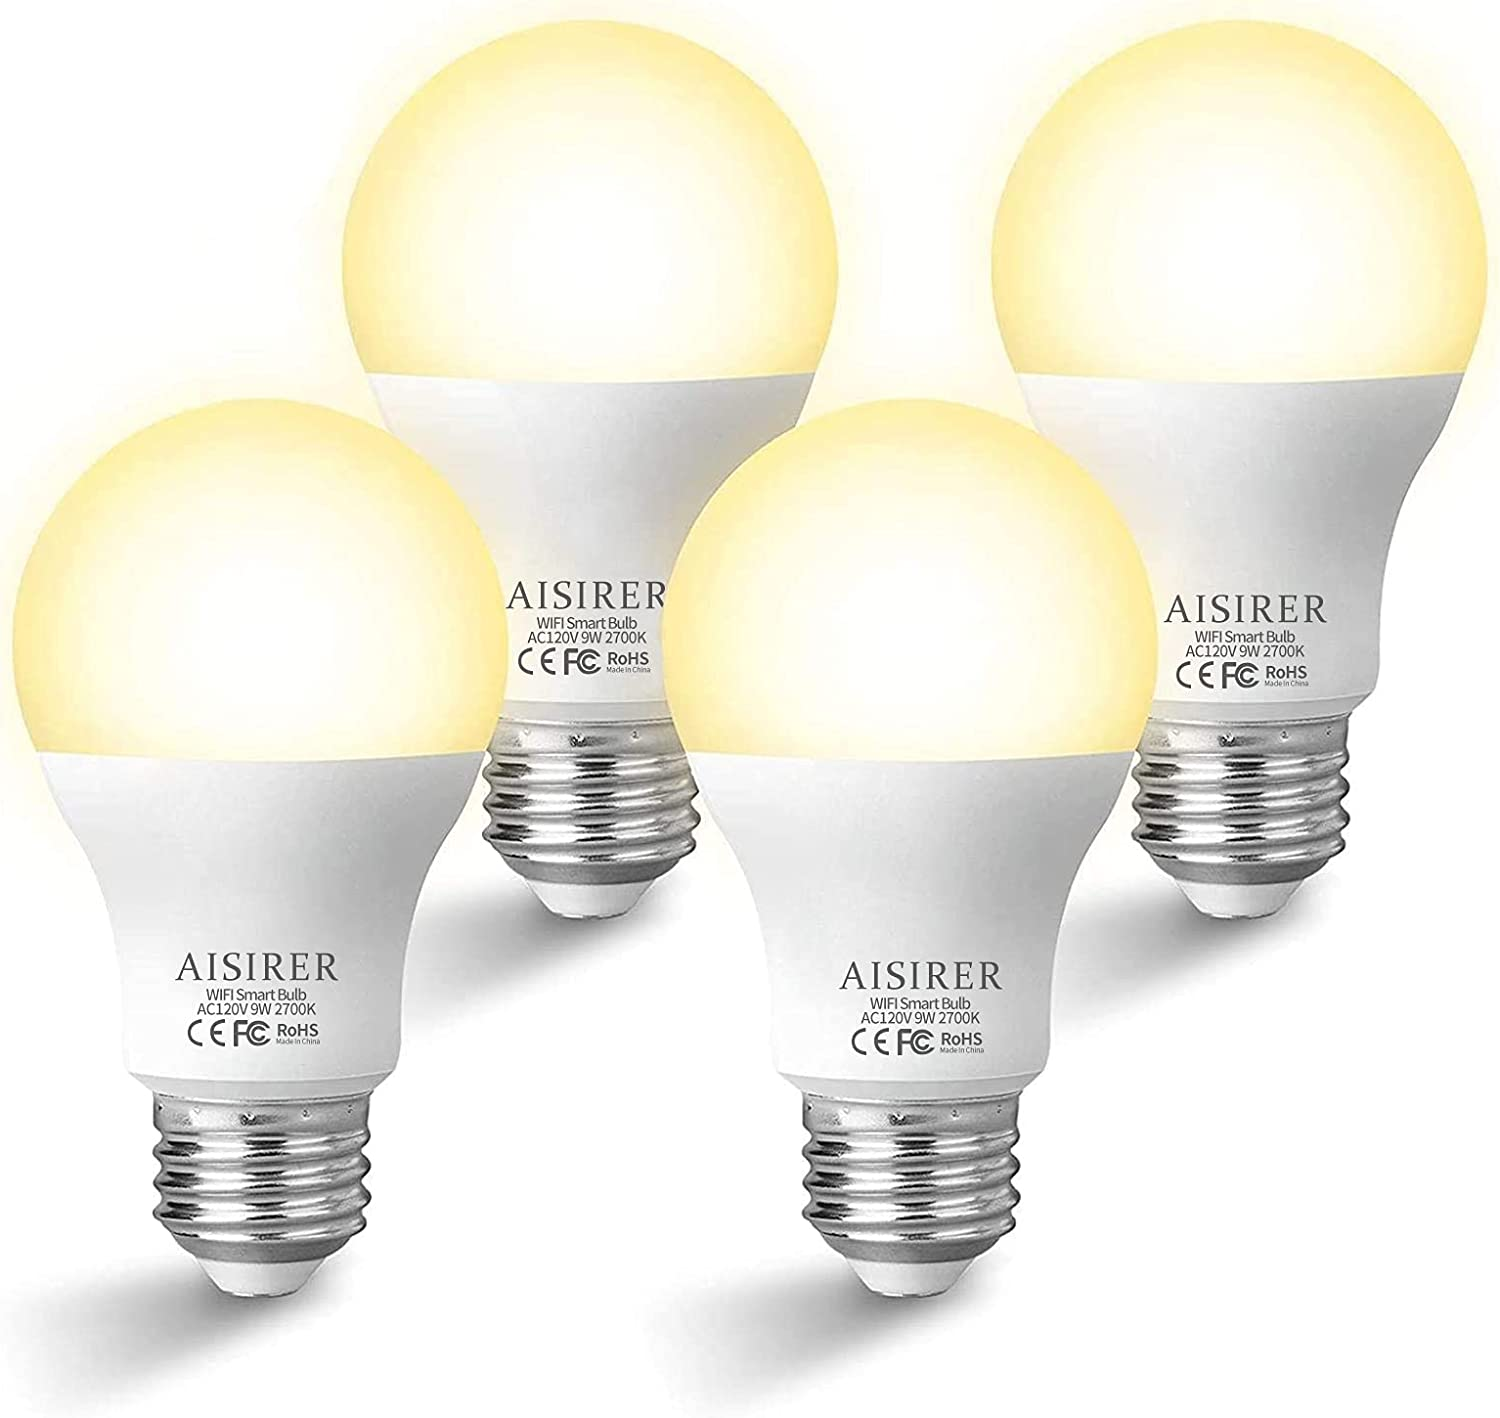 Smart Light Bulbs That Work with Alexa and Google Home, 9W AISIRER Smart Bulbs, WiFi Dimmable Warm White A19 E26 2700K LED Lights Bulbs, 806 Lumen, 80W Equivalent, No Hub Required, 4 Pack